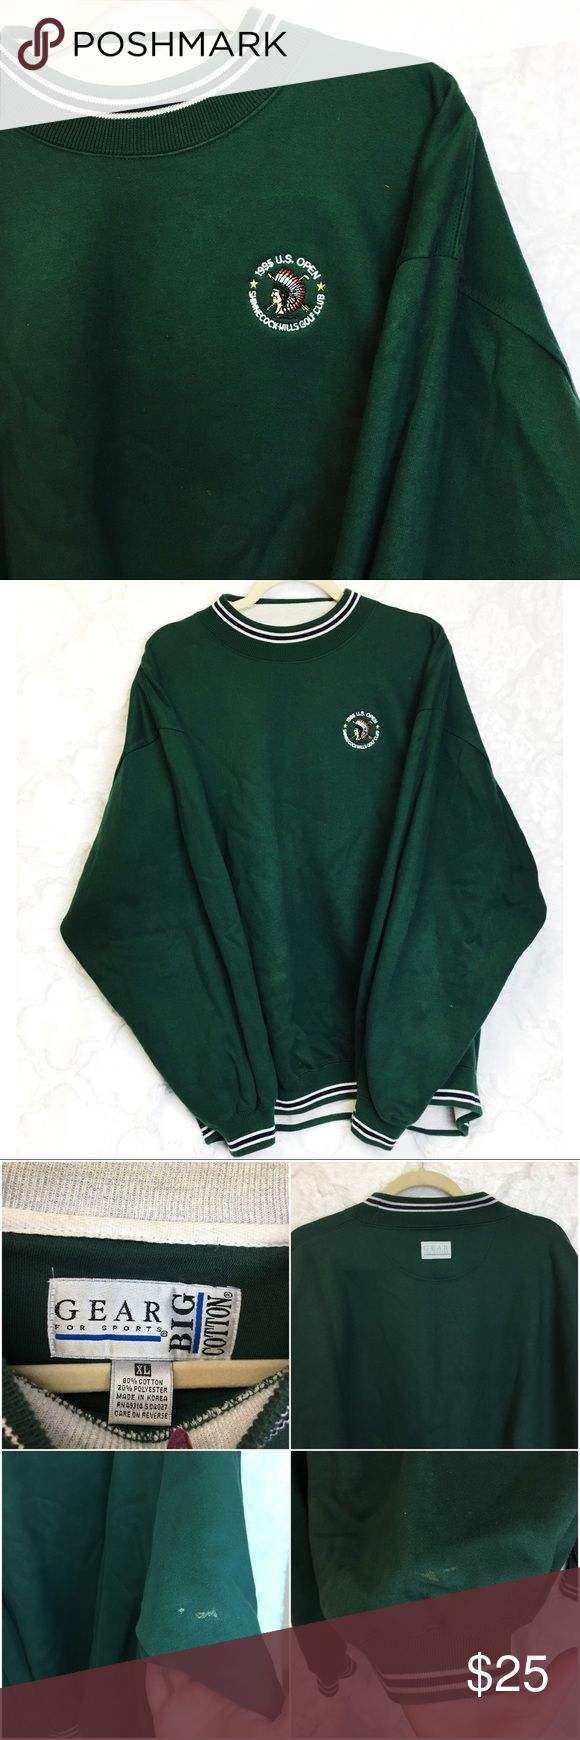 1995 U.S. Open Golf Embroidered Spell Out Sweater In good vintage condition, two small spots as shown, no other notable flaws. Smoke free home. Vintage Shirts Sweatshirts & Hoodies